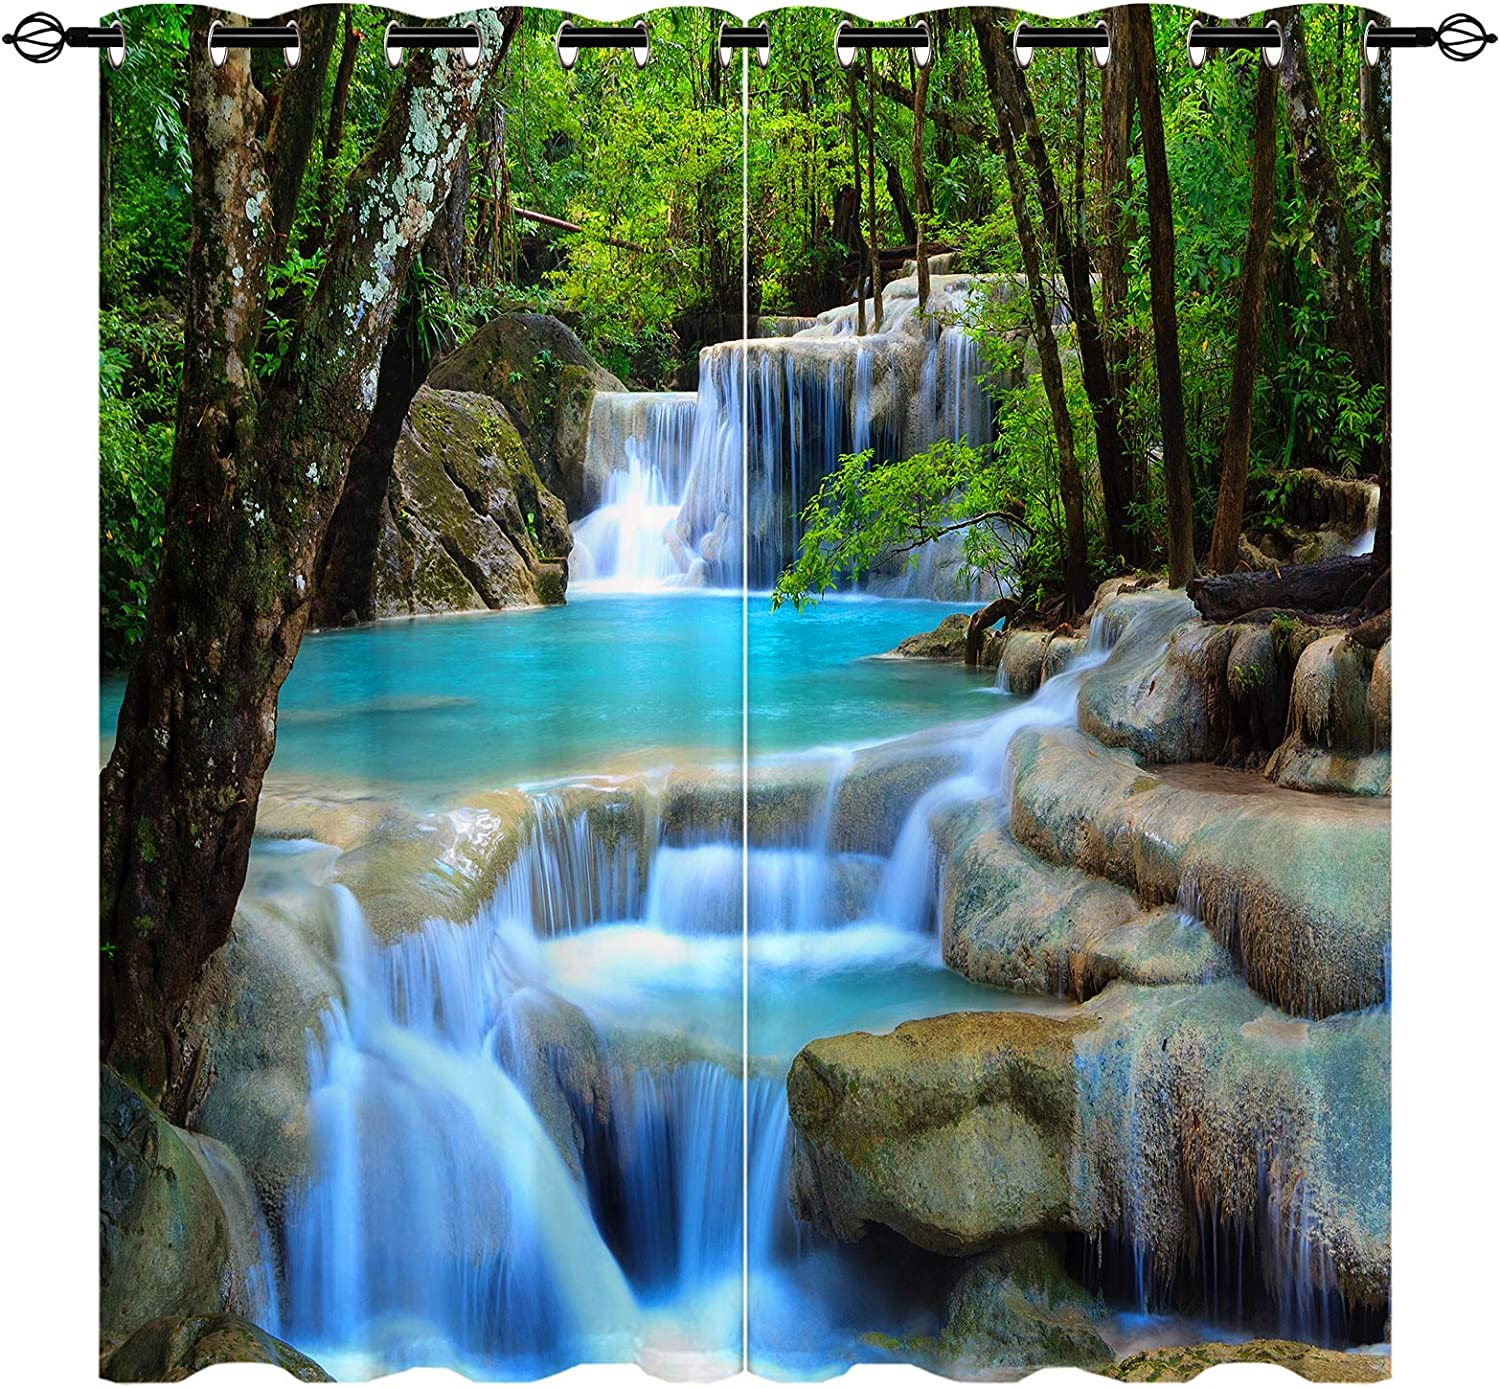 ANHOPE Waterfall Curtains Nature Scenery Theme Window Drapes with Forest Tree Waterfall Landscape Mossy Rocks Print Pattern Grommet Room Decor Curtains for Bedroom Living Room, 2 Panels, 42 x 63 Inch